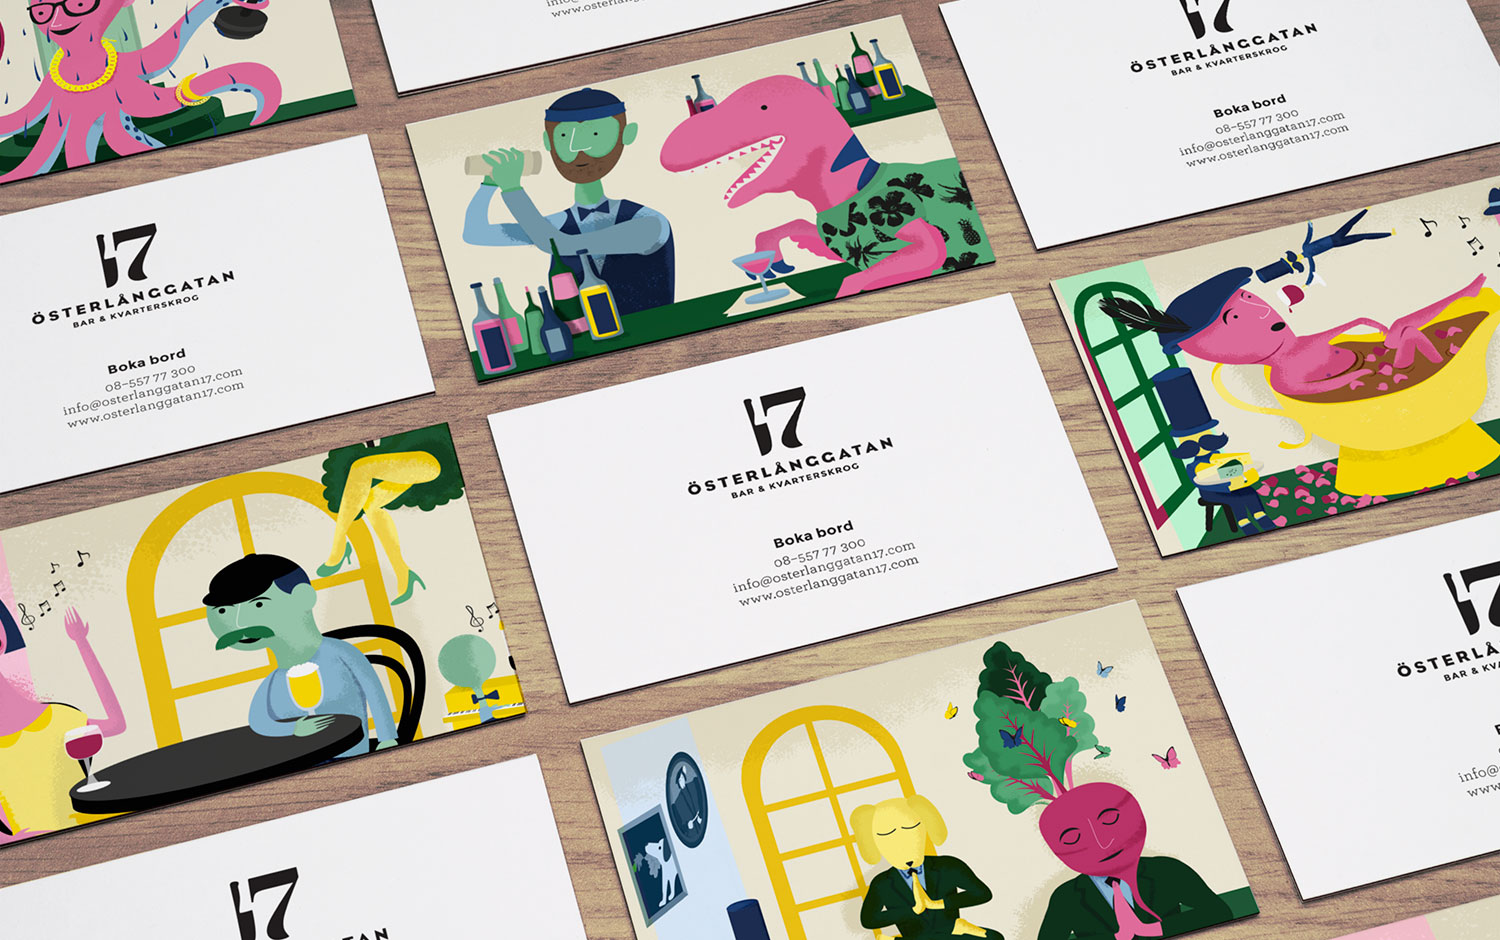 Illustrated business cards for Scandinavian restaurant Österlånggatan 17 designed by Lobby Design